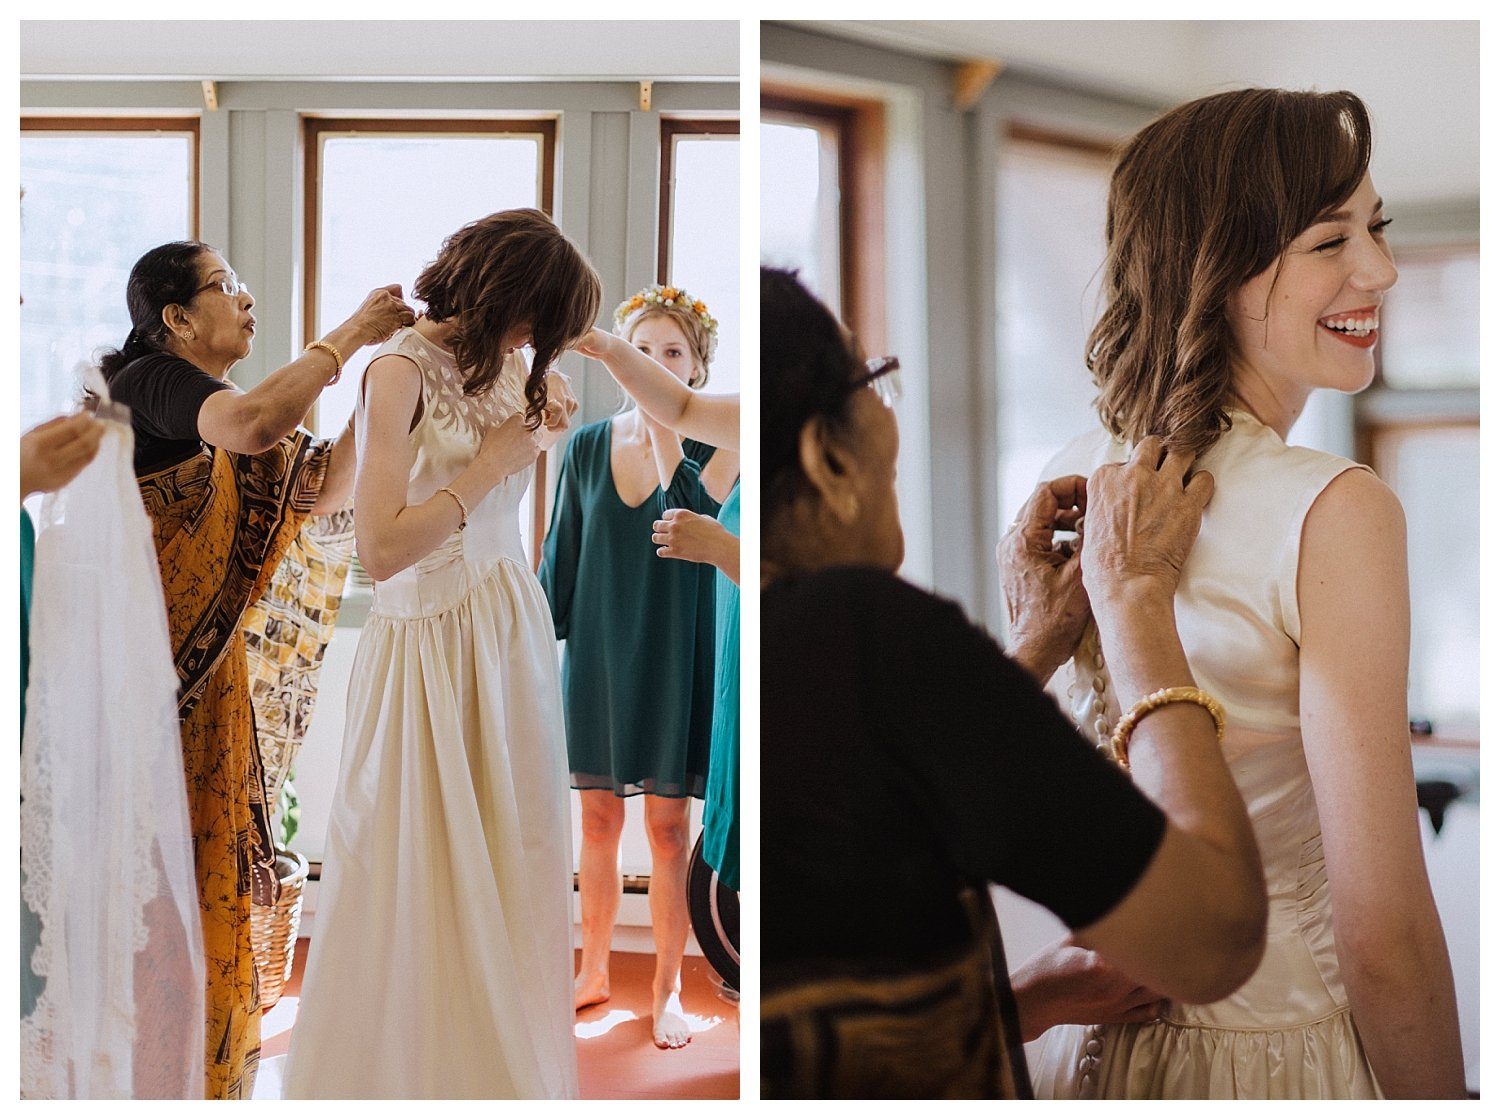 Champaign bride putting on her wedding dress